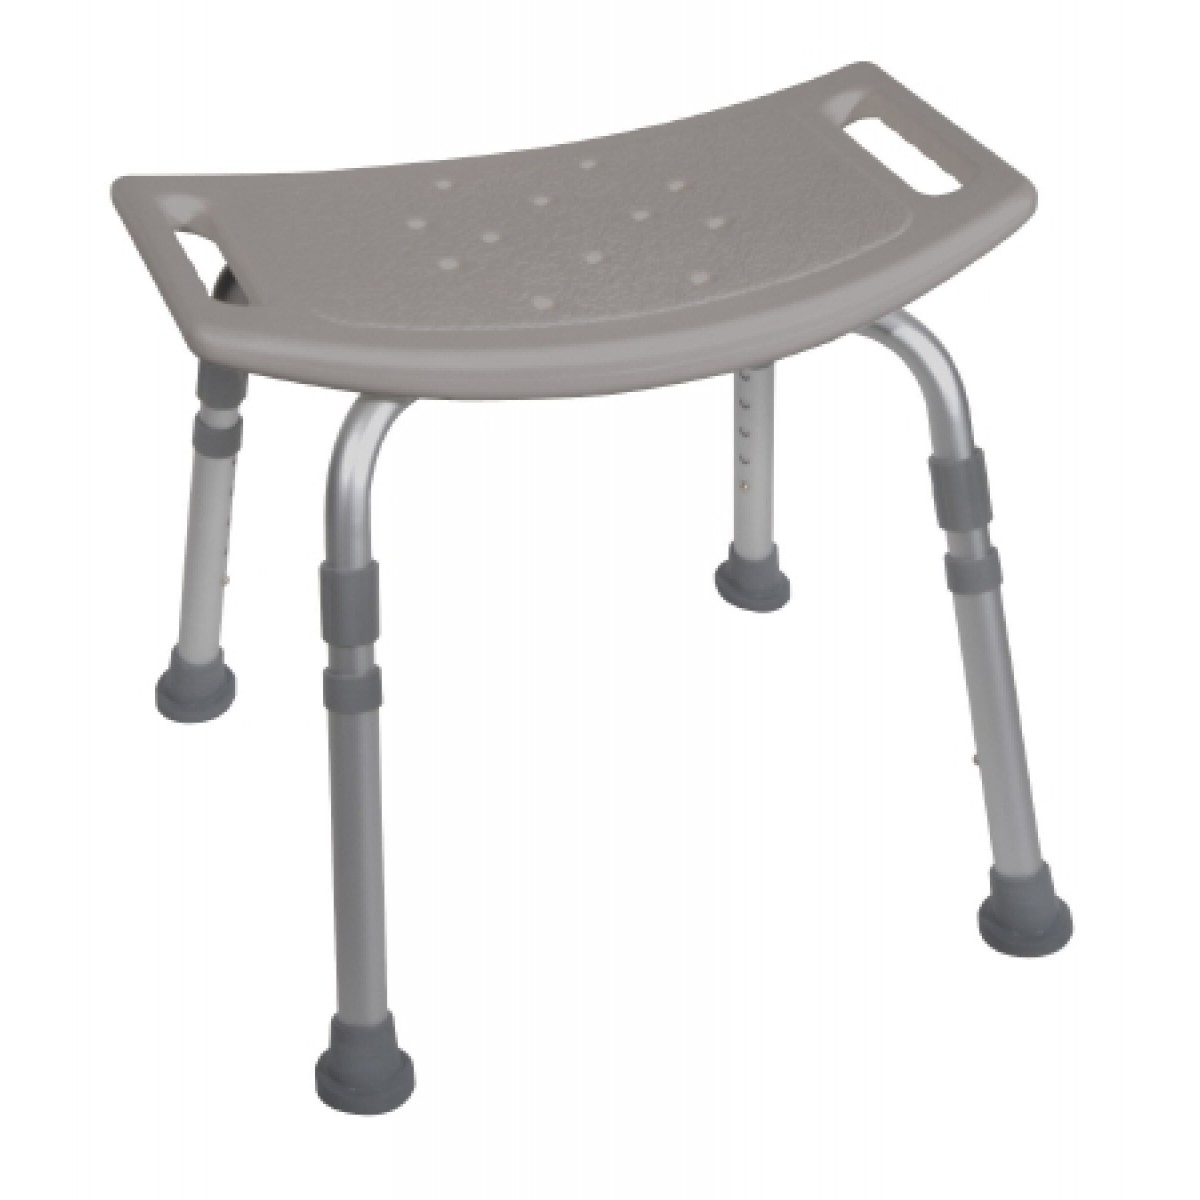 drive shower chair without back what states still use the electric kd aluminum bath bench by medical